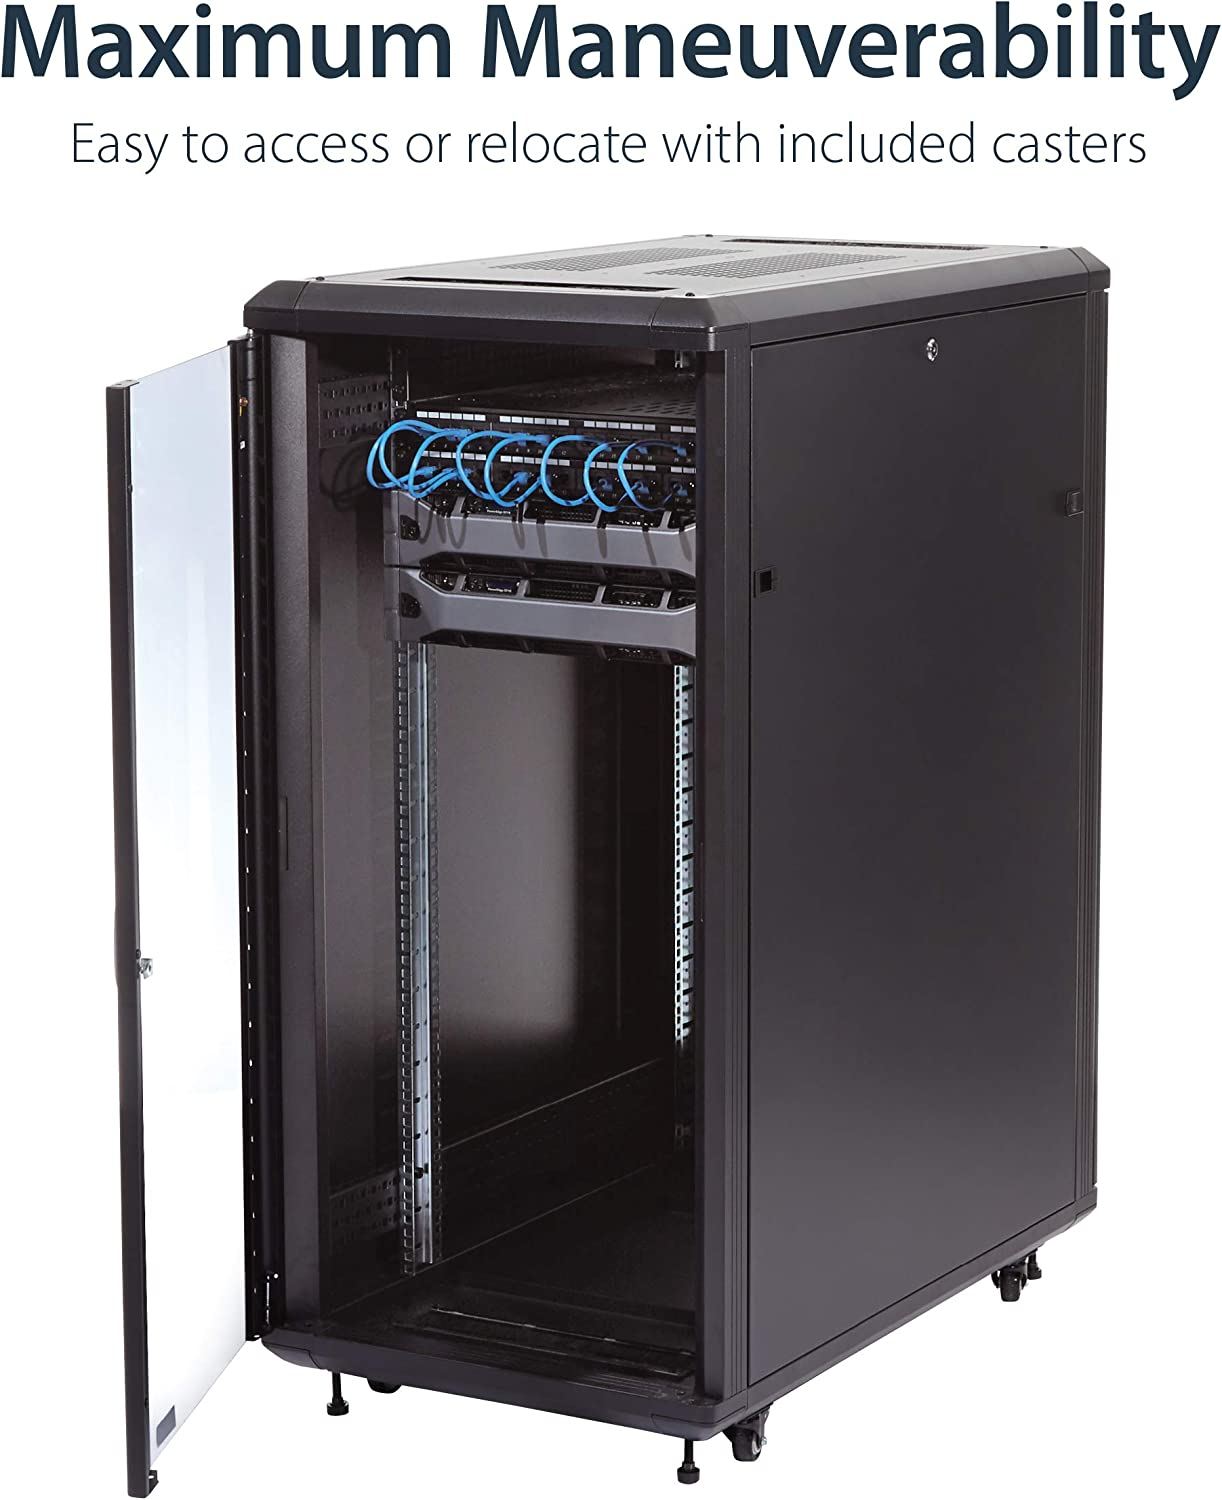 RK960CP Deep Portable Cabinet TAA Compliant StarTech.com 9U Open Frame Rack with Handles 4 Post 23 in 220 lbs capacity